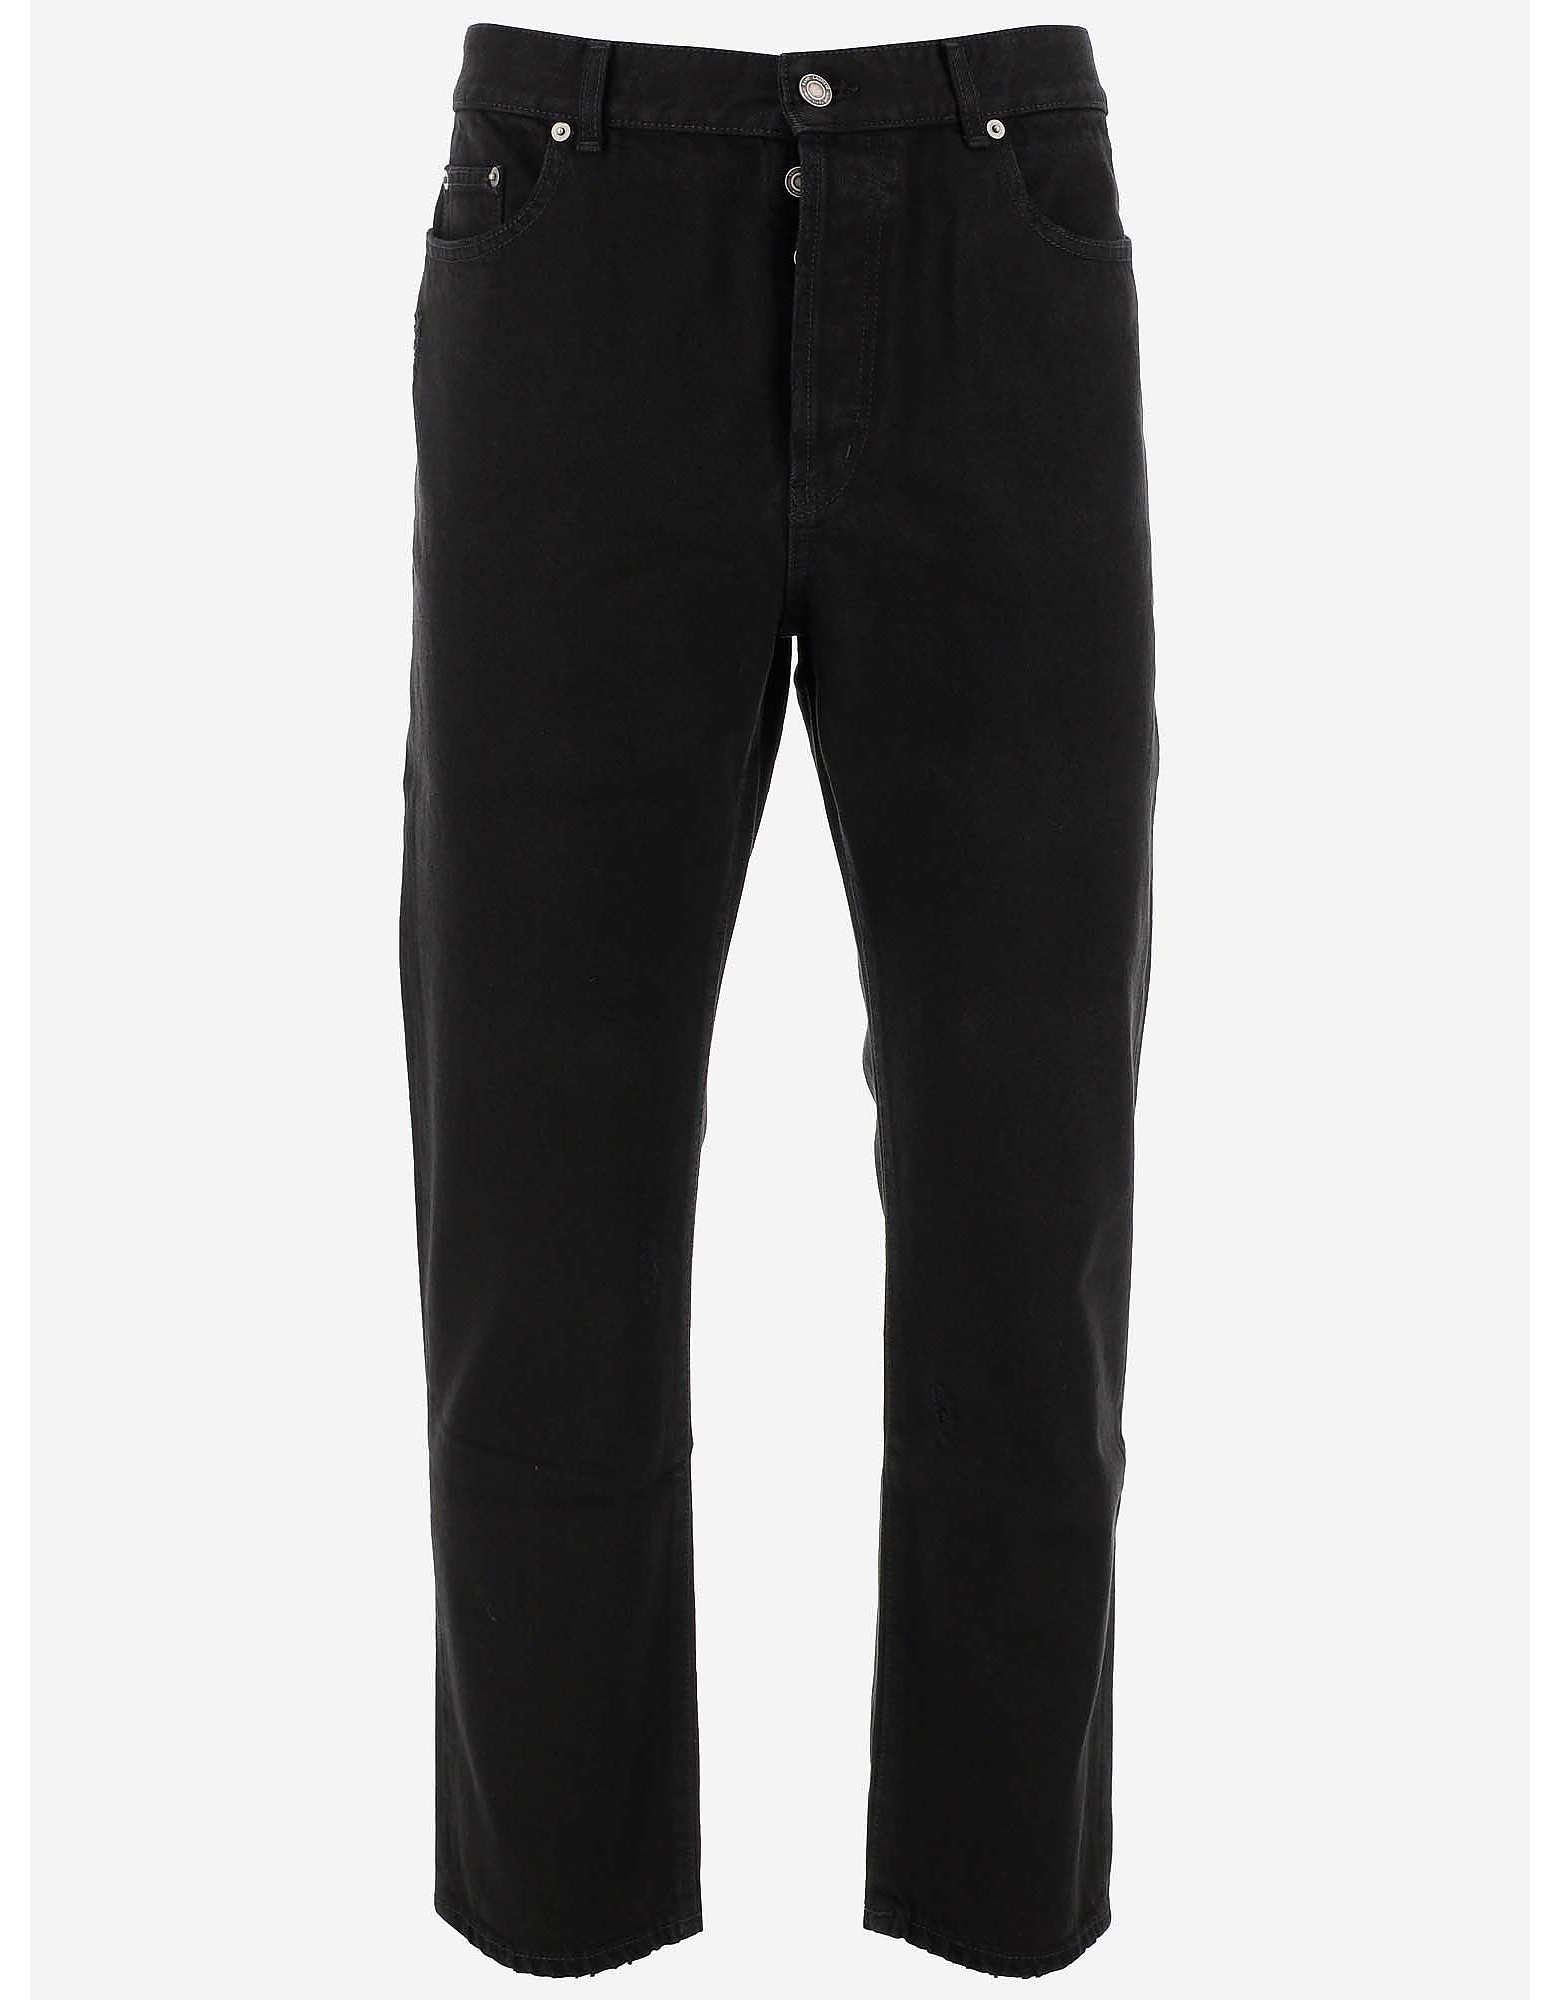 Saint Laurent Designer Jeans, Black Cotton Denim Men's Jeans